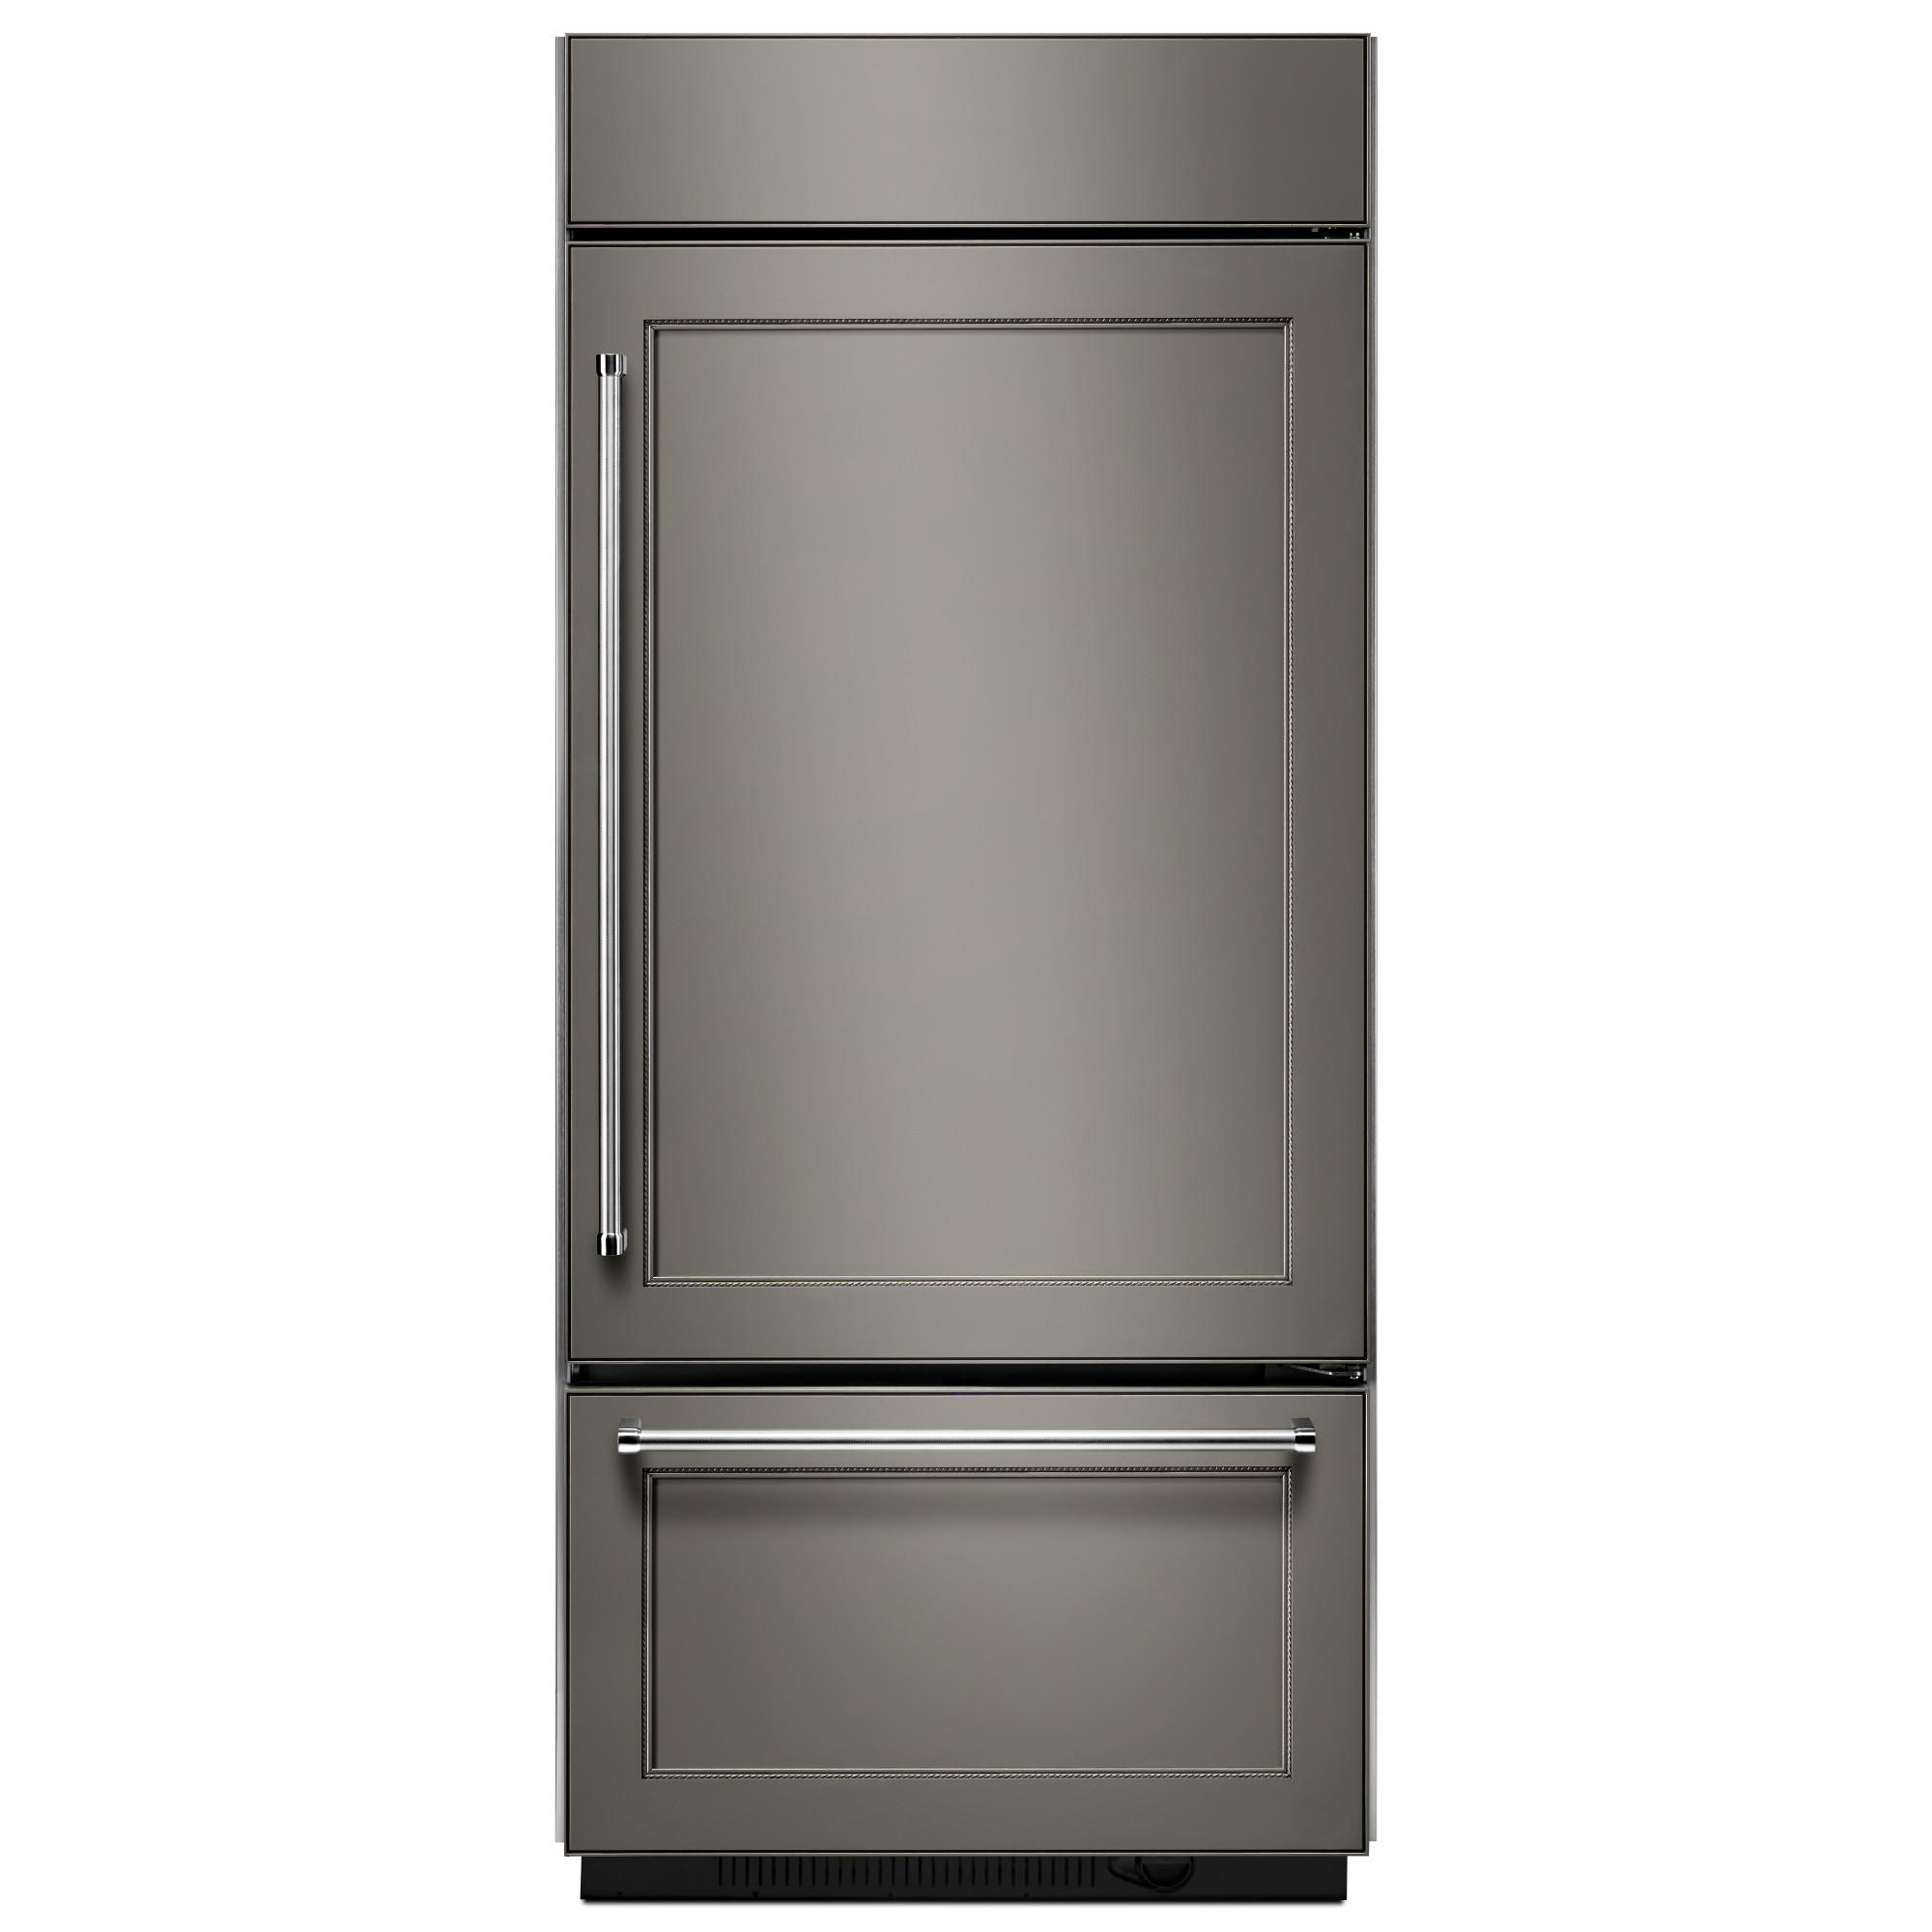 KitchenAid  20.9 cu. ft. Built-In Bottom Mount Refrigerator - Panel Ready  ENERGY STAR®